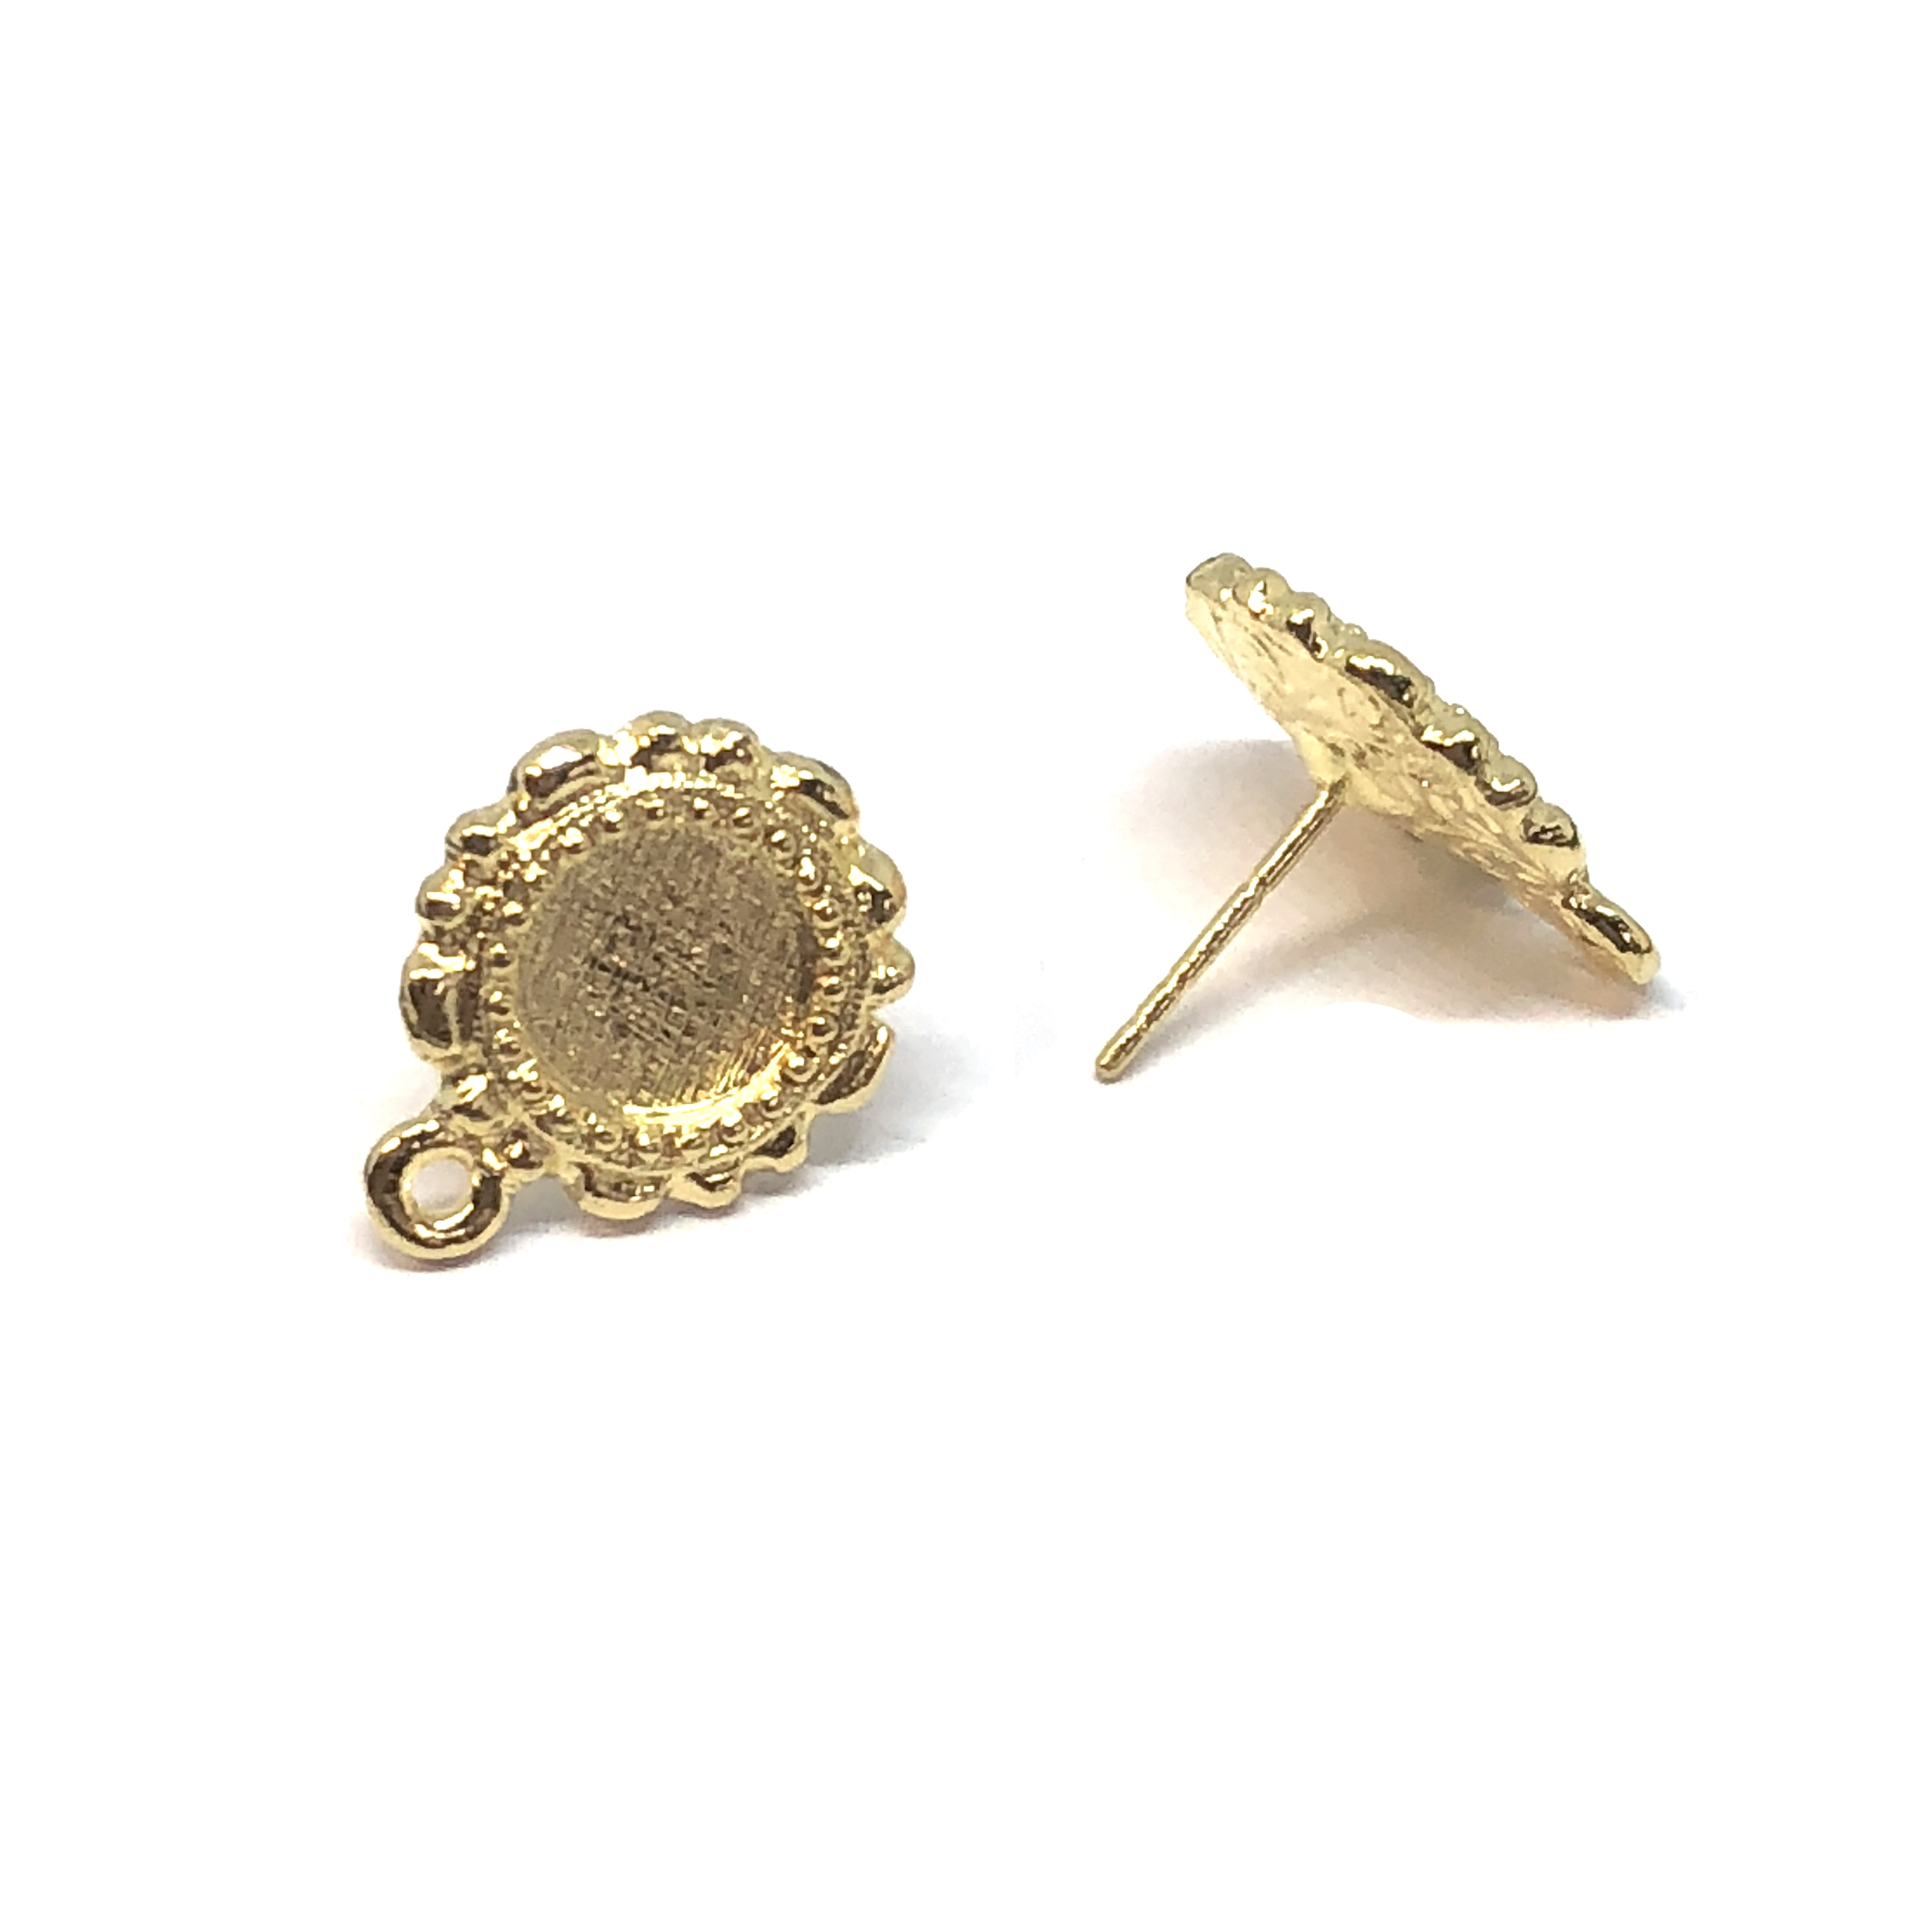 mount earring stud with accent drop, 22K gold finish pewter, earring with stone sets, round earrings, accent drop, vintage style, B'sue by 1928, lead free pewter castings, cast pewter jewelry findings, US made, 1928 Company, B'sue Boutiques, 16x13mm,08549